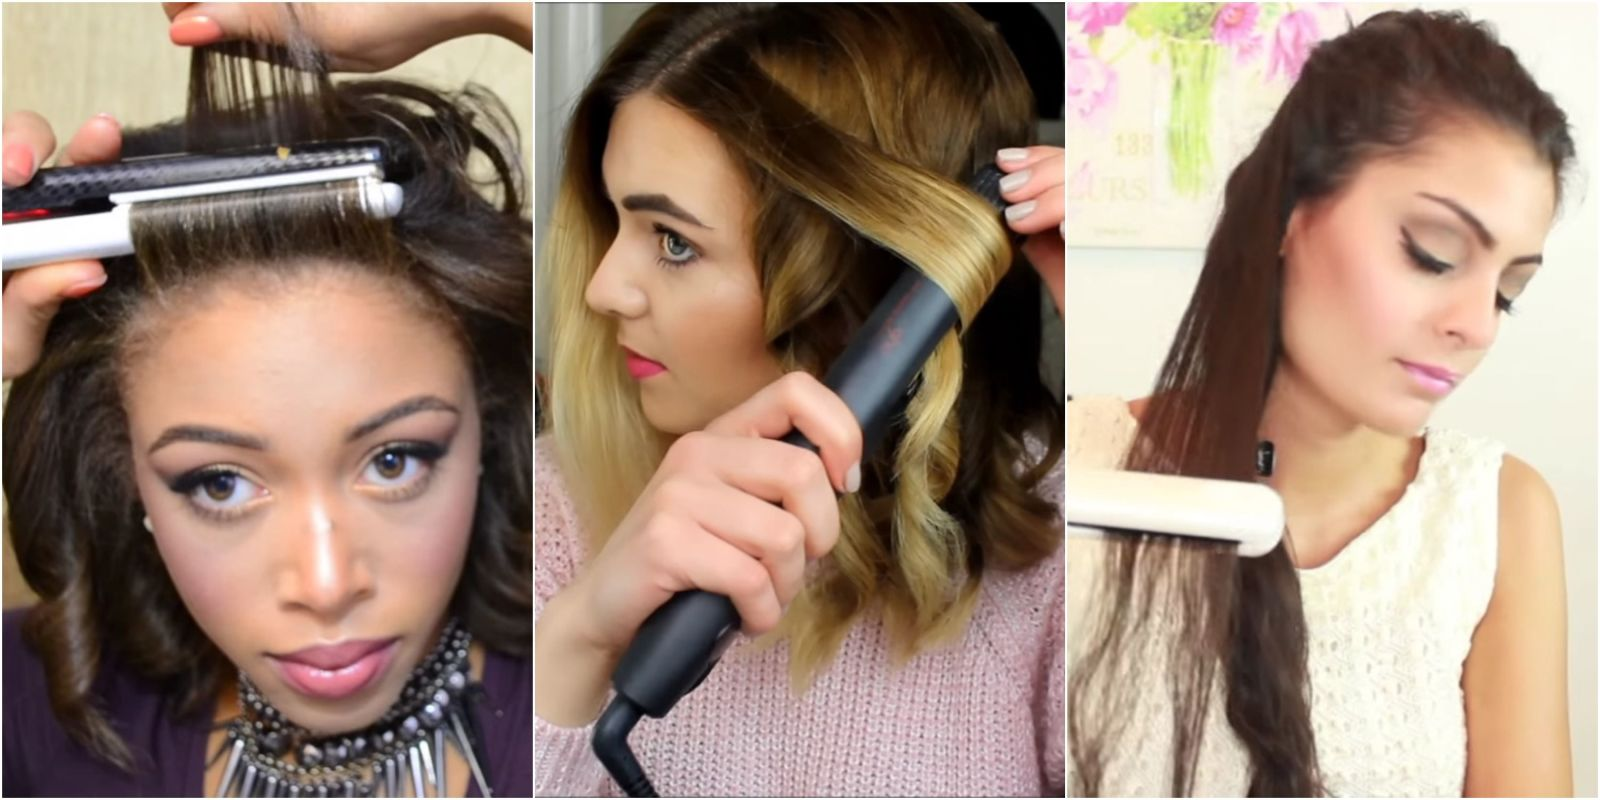 Styling Short Hair With A Flat Iron 8 Ways To Use Your Flat Iron — Flat Iron Hacks